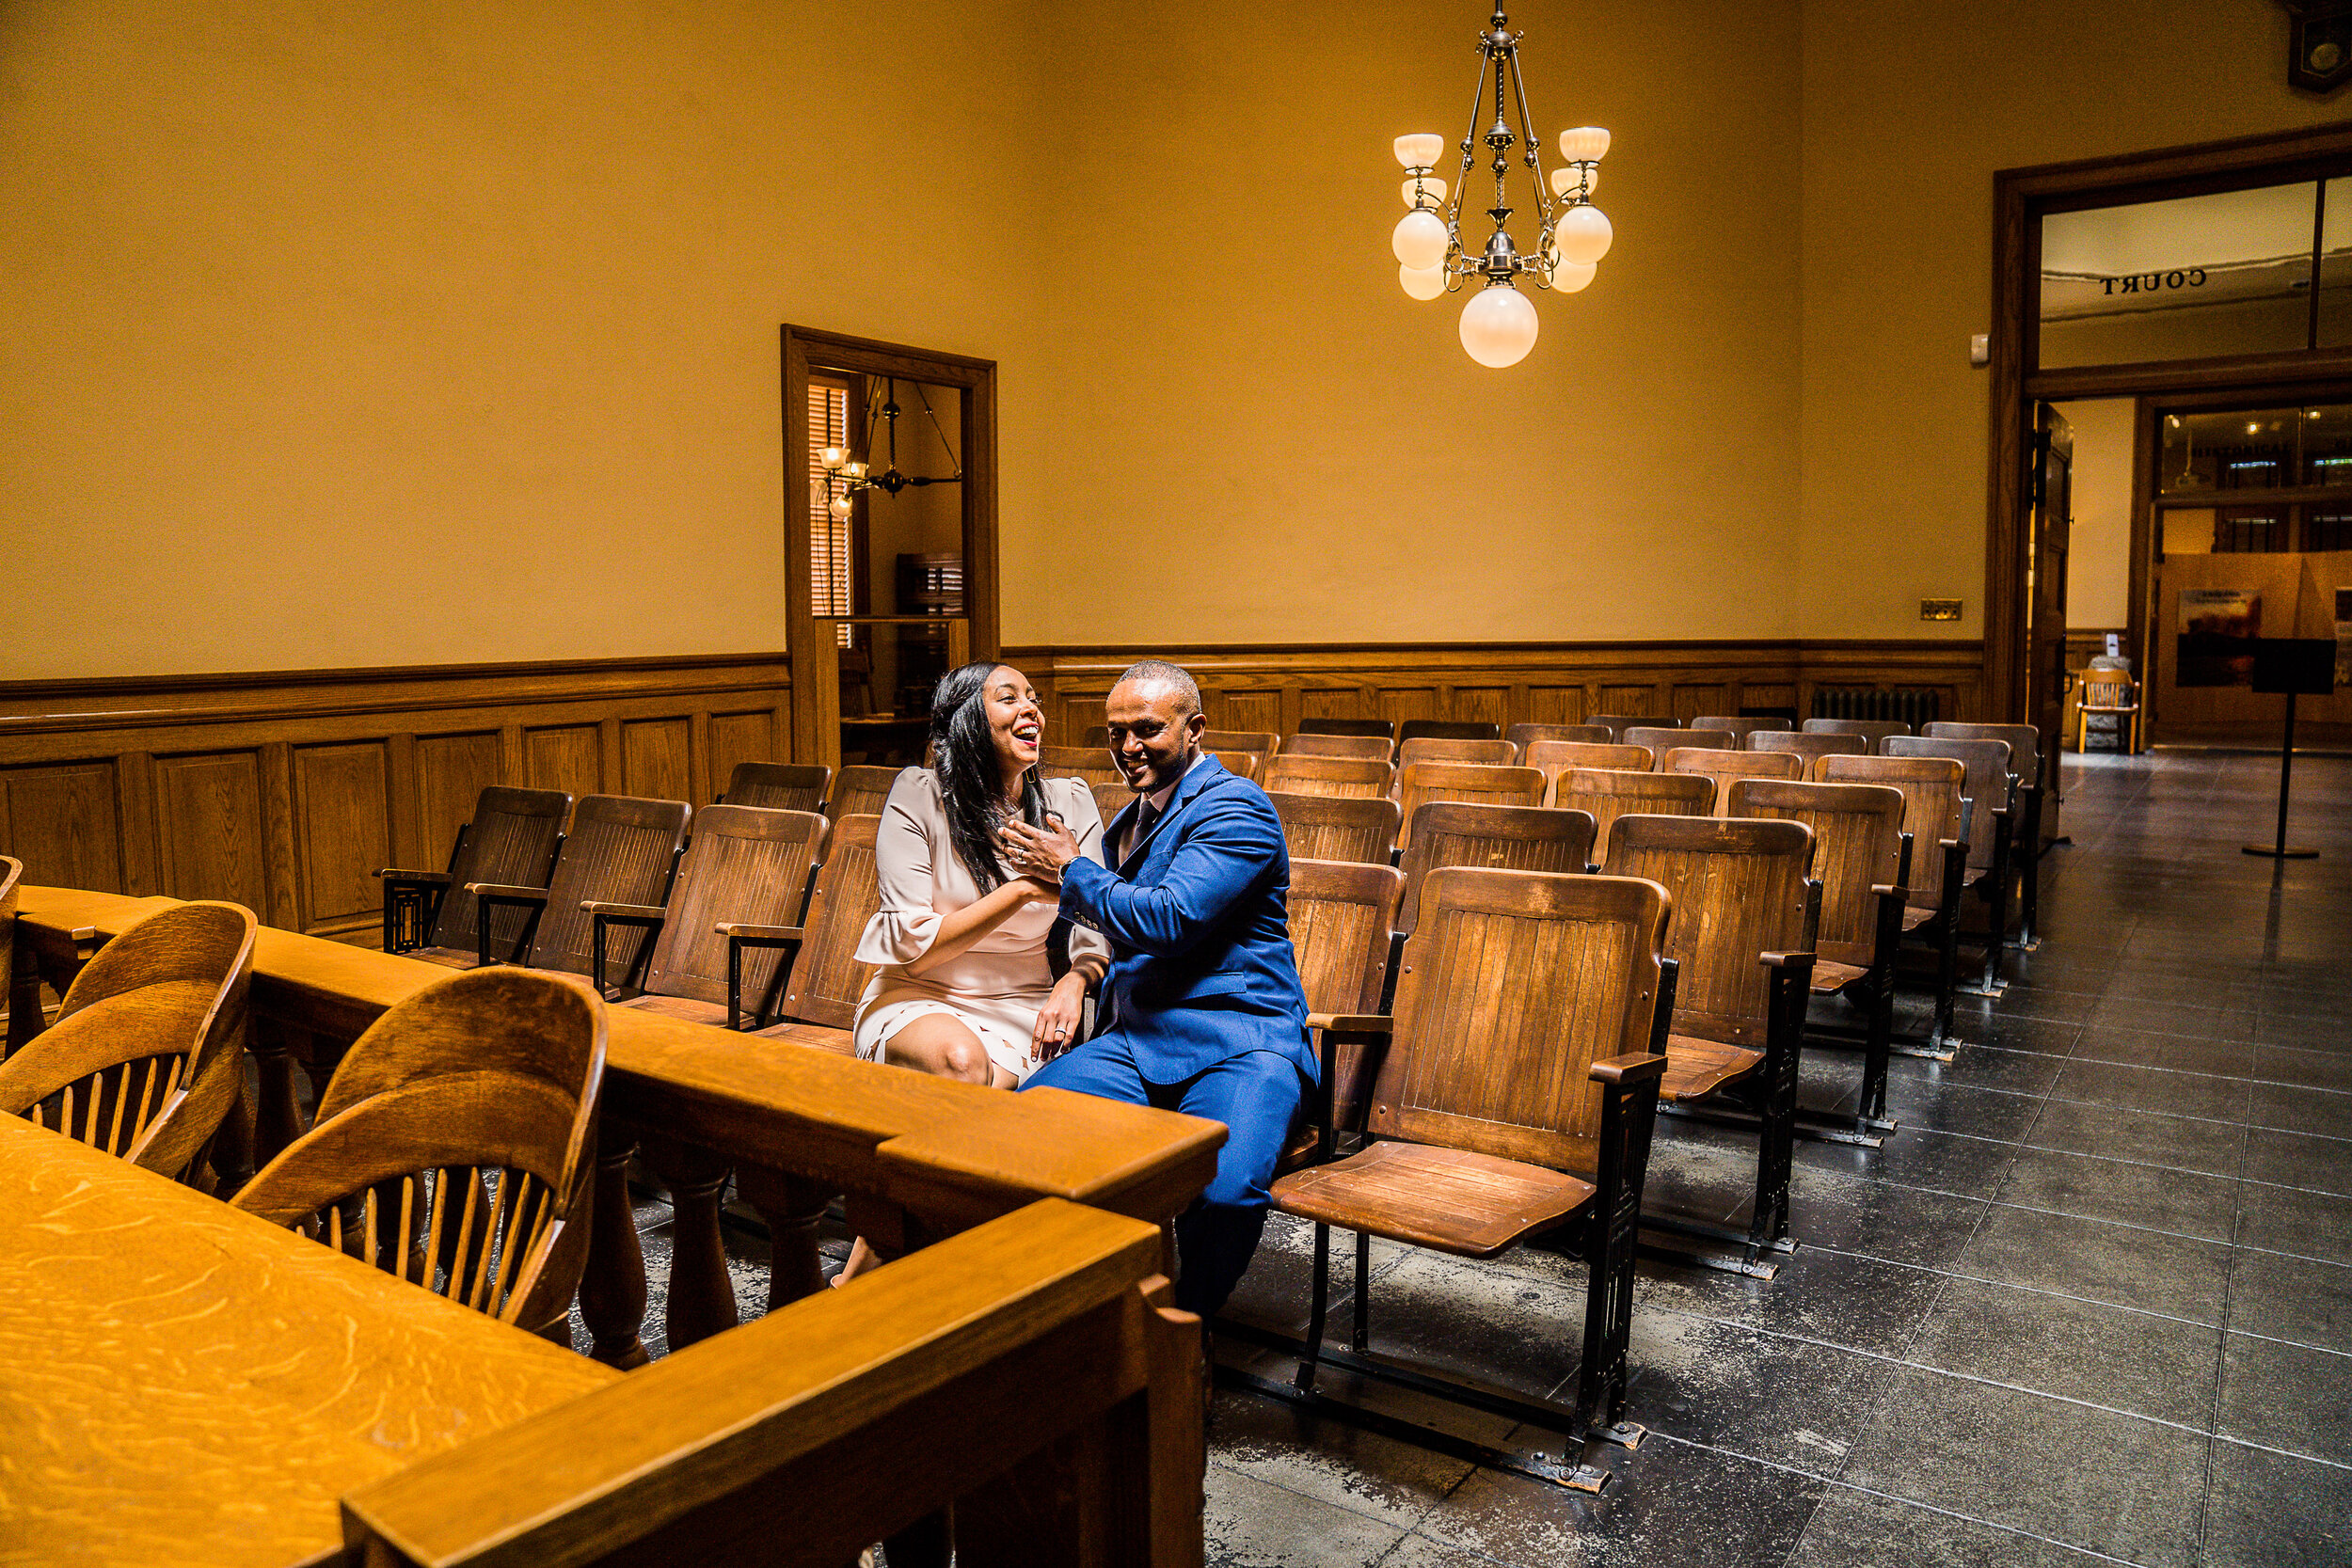 sewit-elopement-orange-county-santa-ana-courthouse-28.jpg